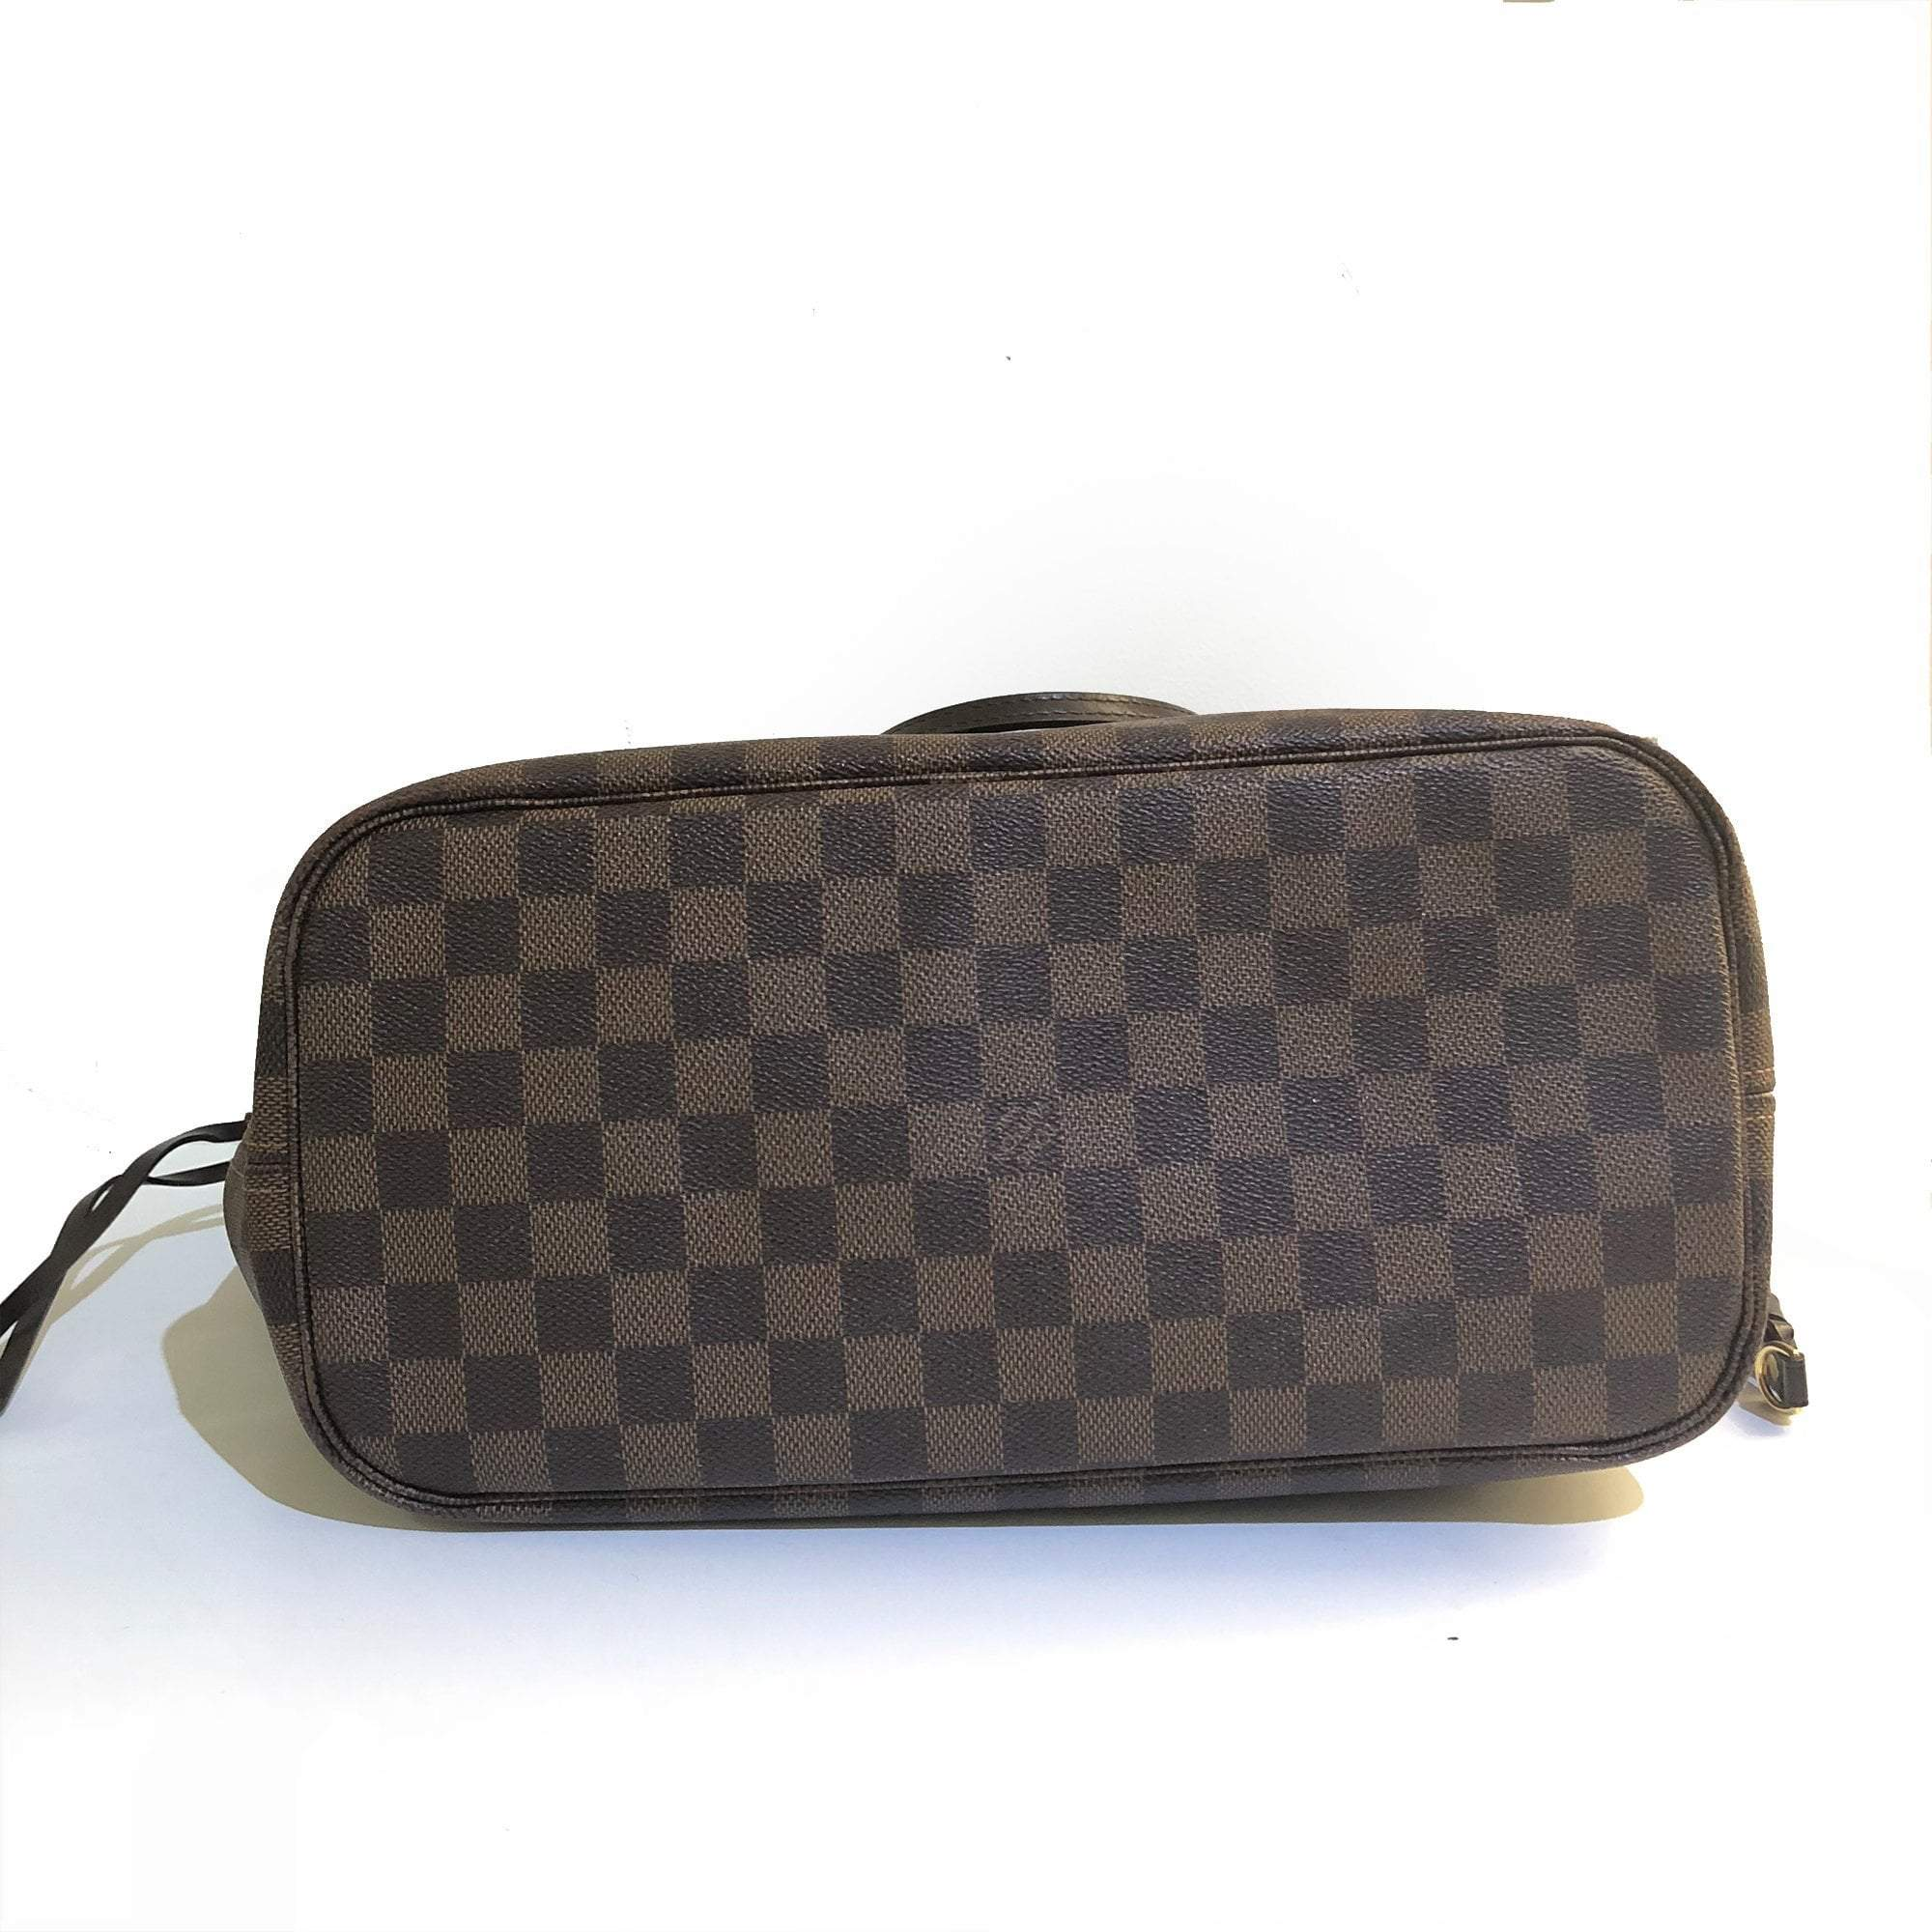 Louis Vuitton Damier Ebene Canvas Neverfull MM Bag